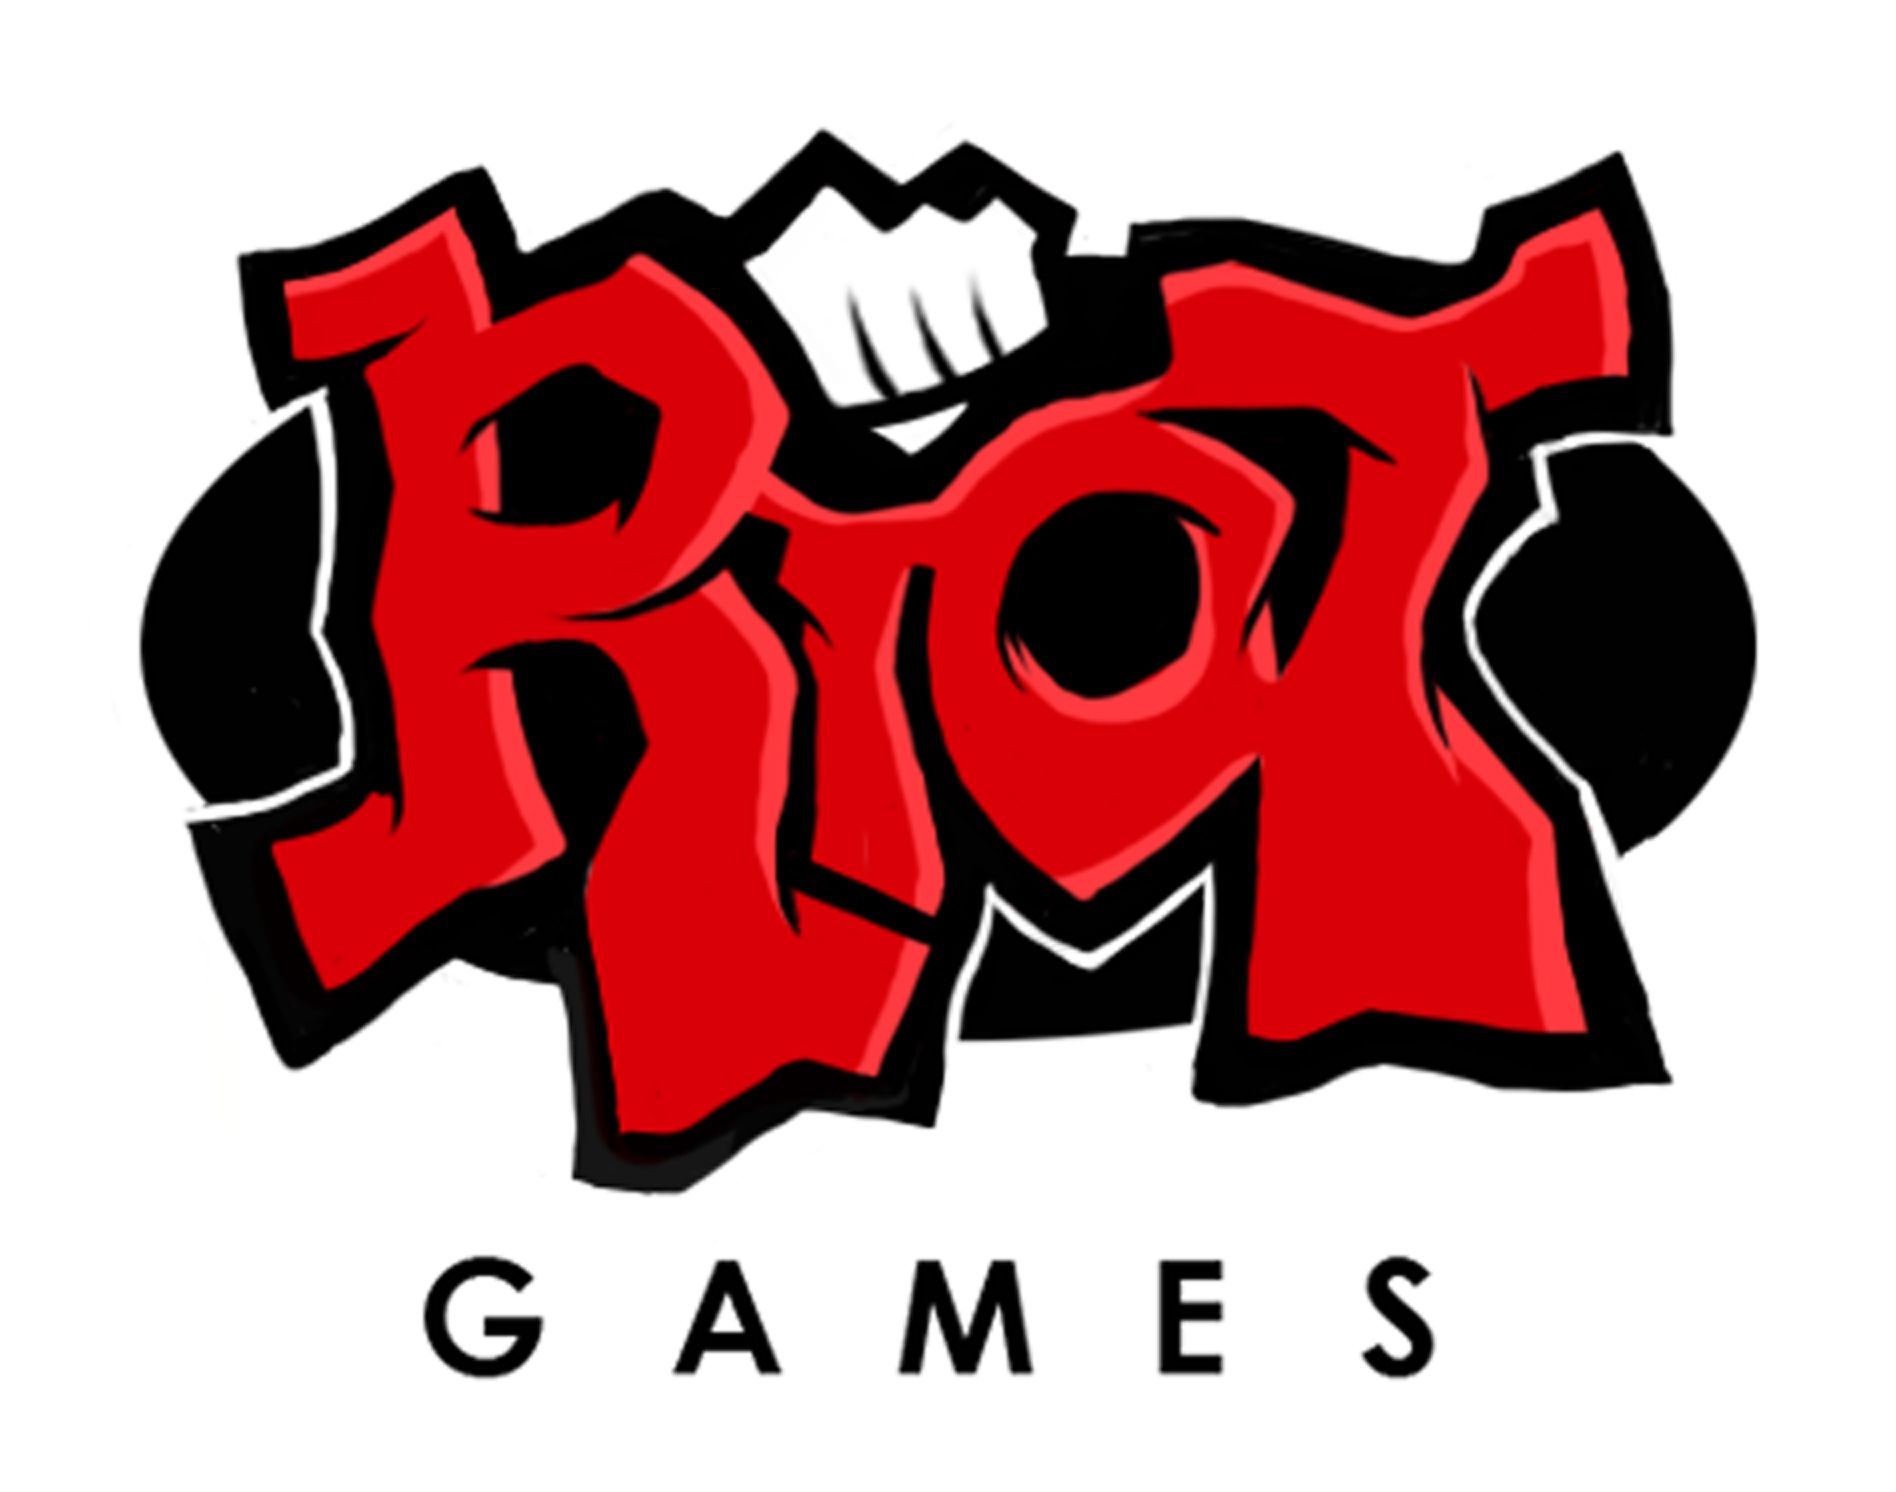 games logo recherche google game logo pinterest riot games rh pinterest com mlb logo maker mlb logo maker